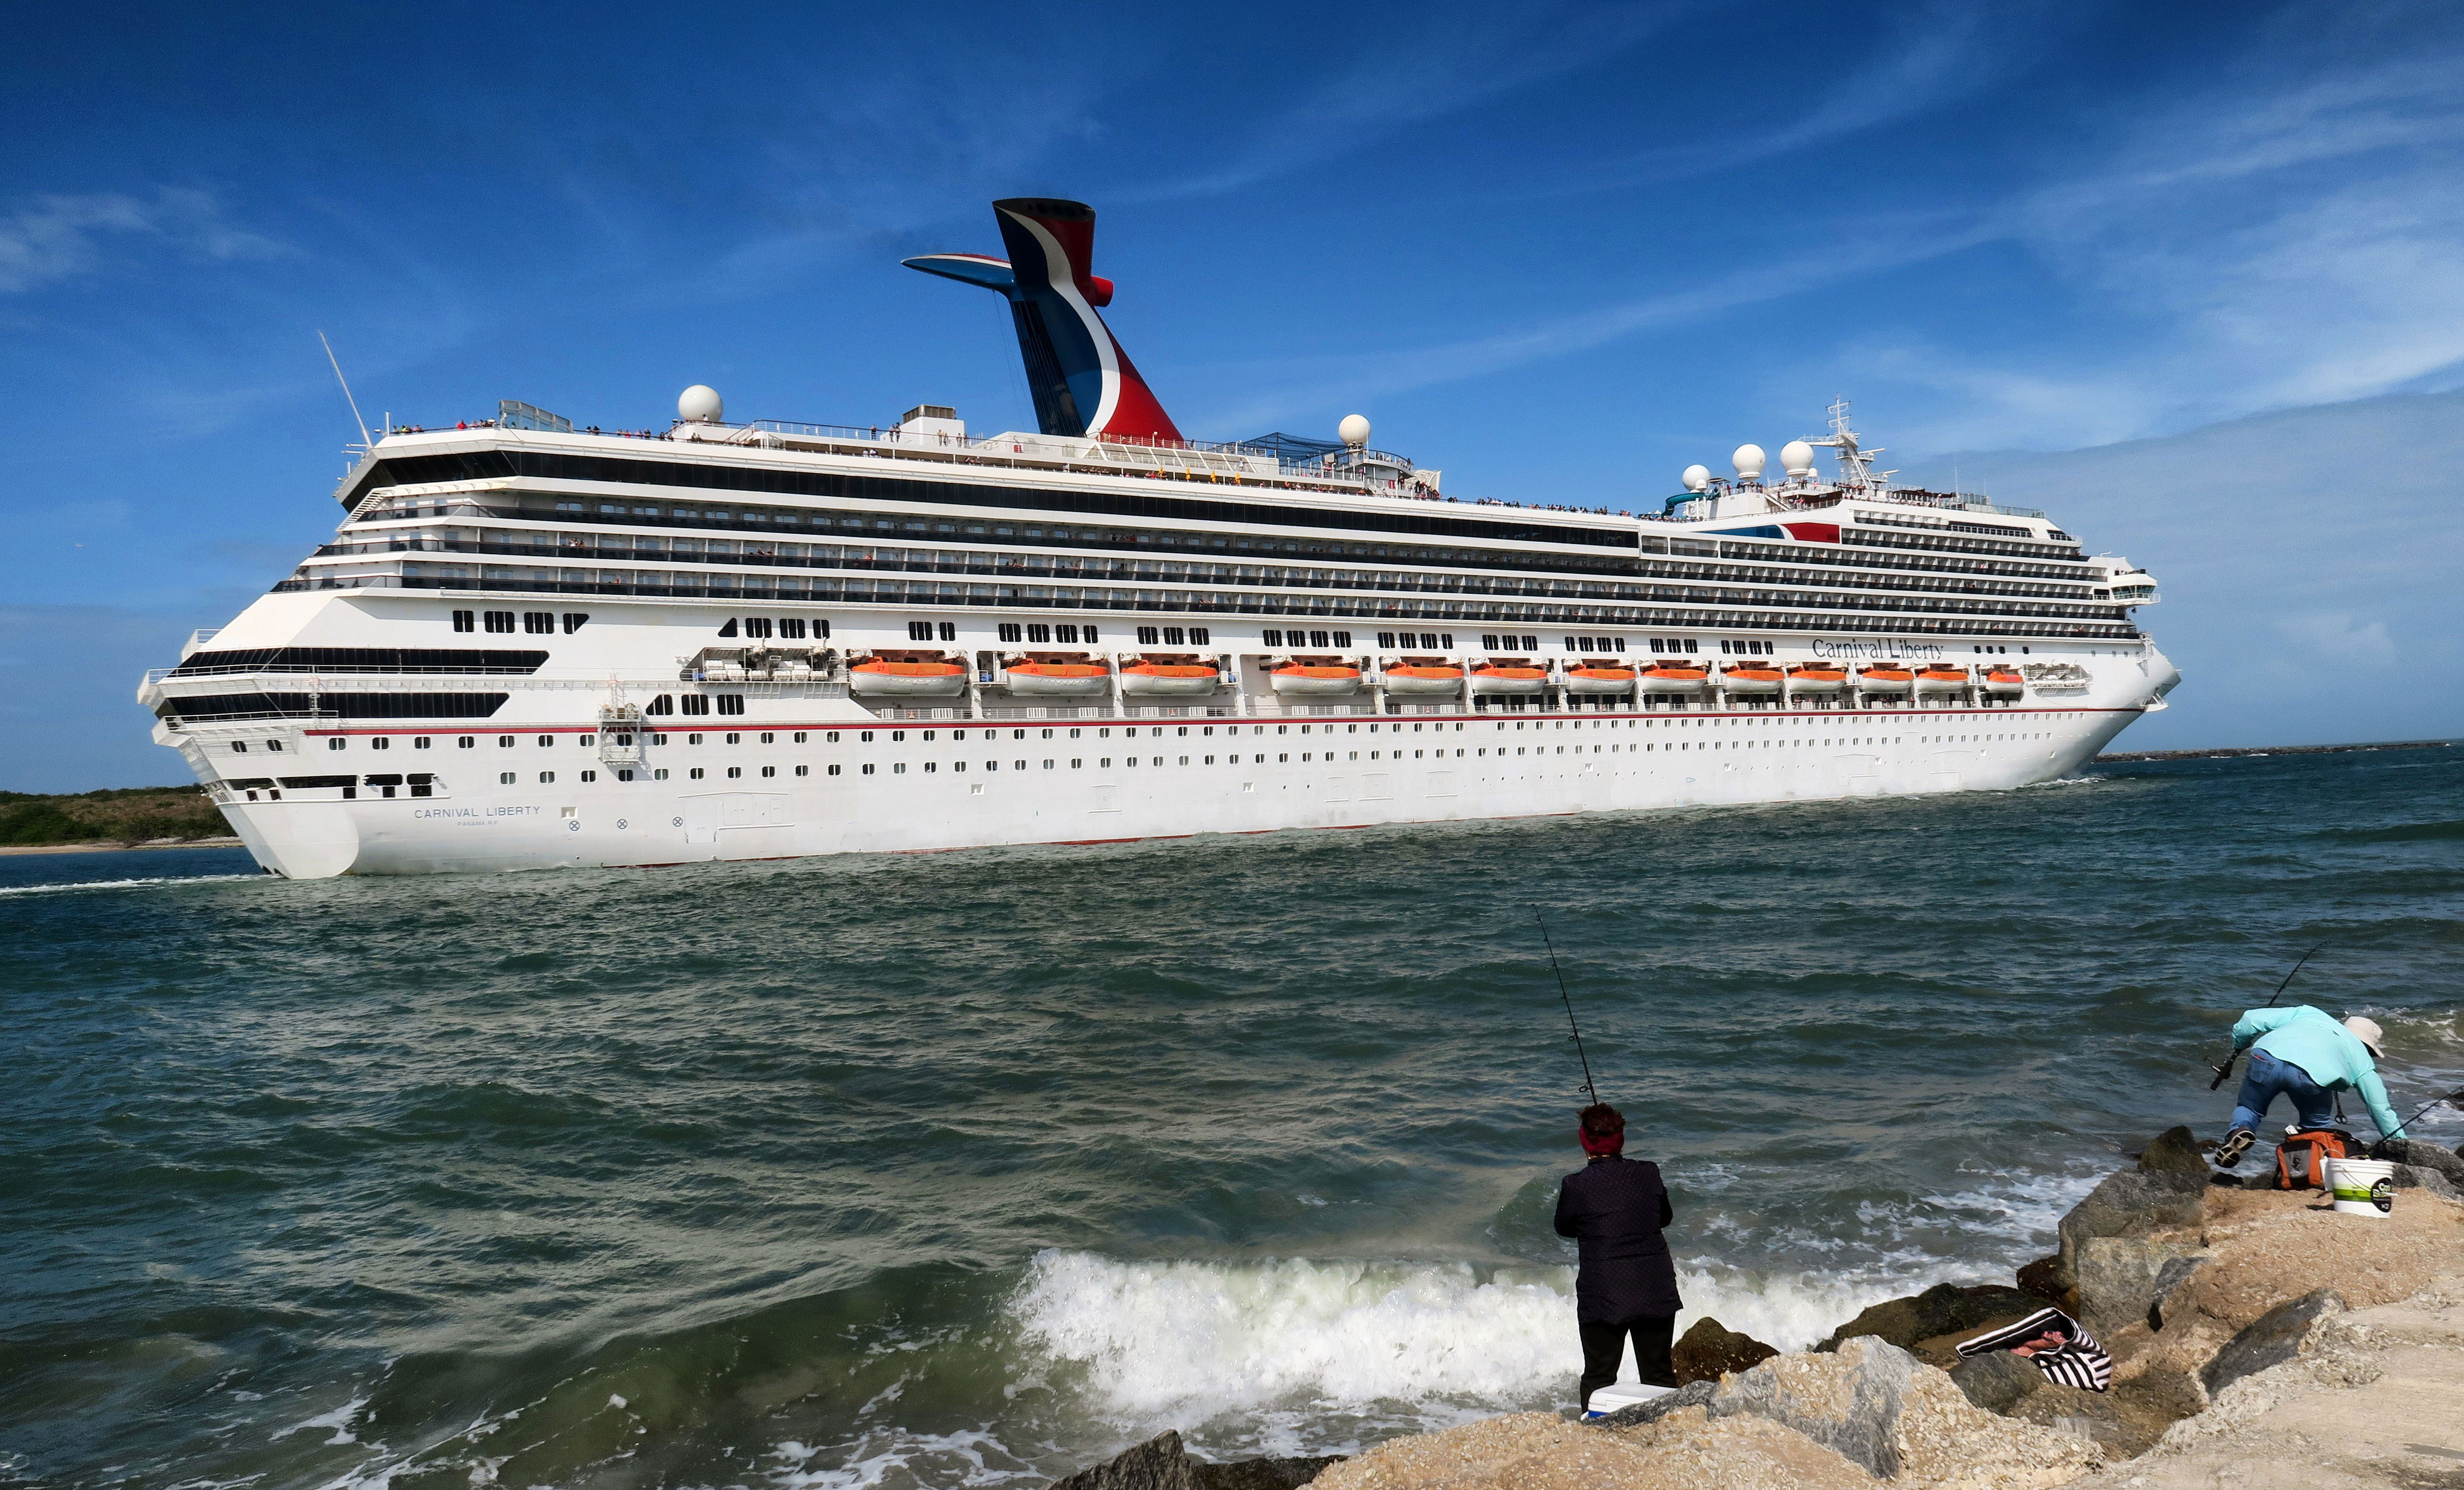 The Carnival Liberty — a Carnival Cruise Line ship — leaves Port Canaveral in Florida on March 9.